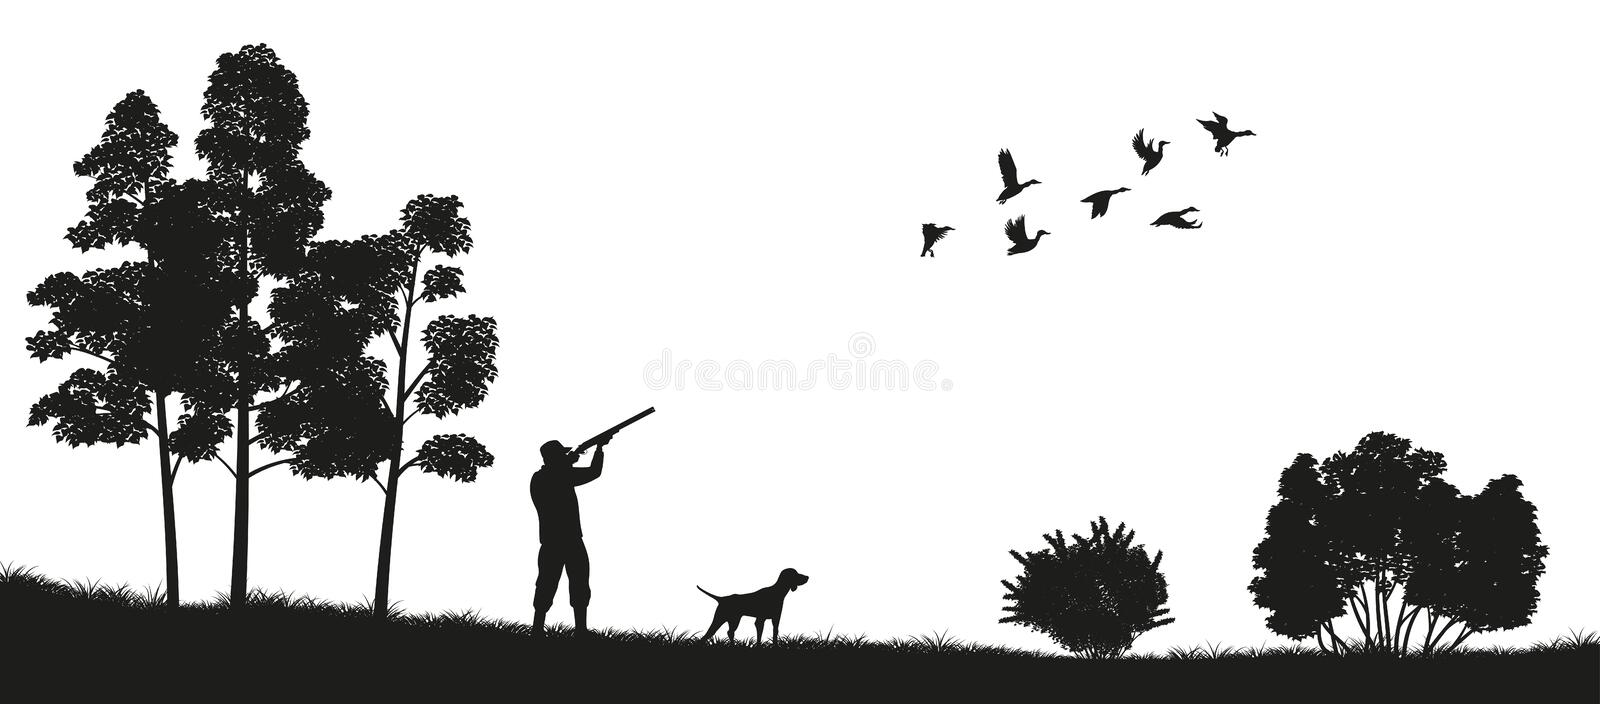 Black silhouette of a hunter with a dog in the forest. Duck hunting. Landscape of wild nature. Vector illustration vector illustration